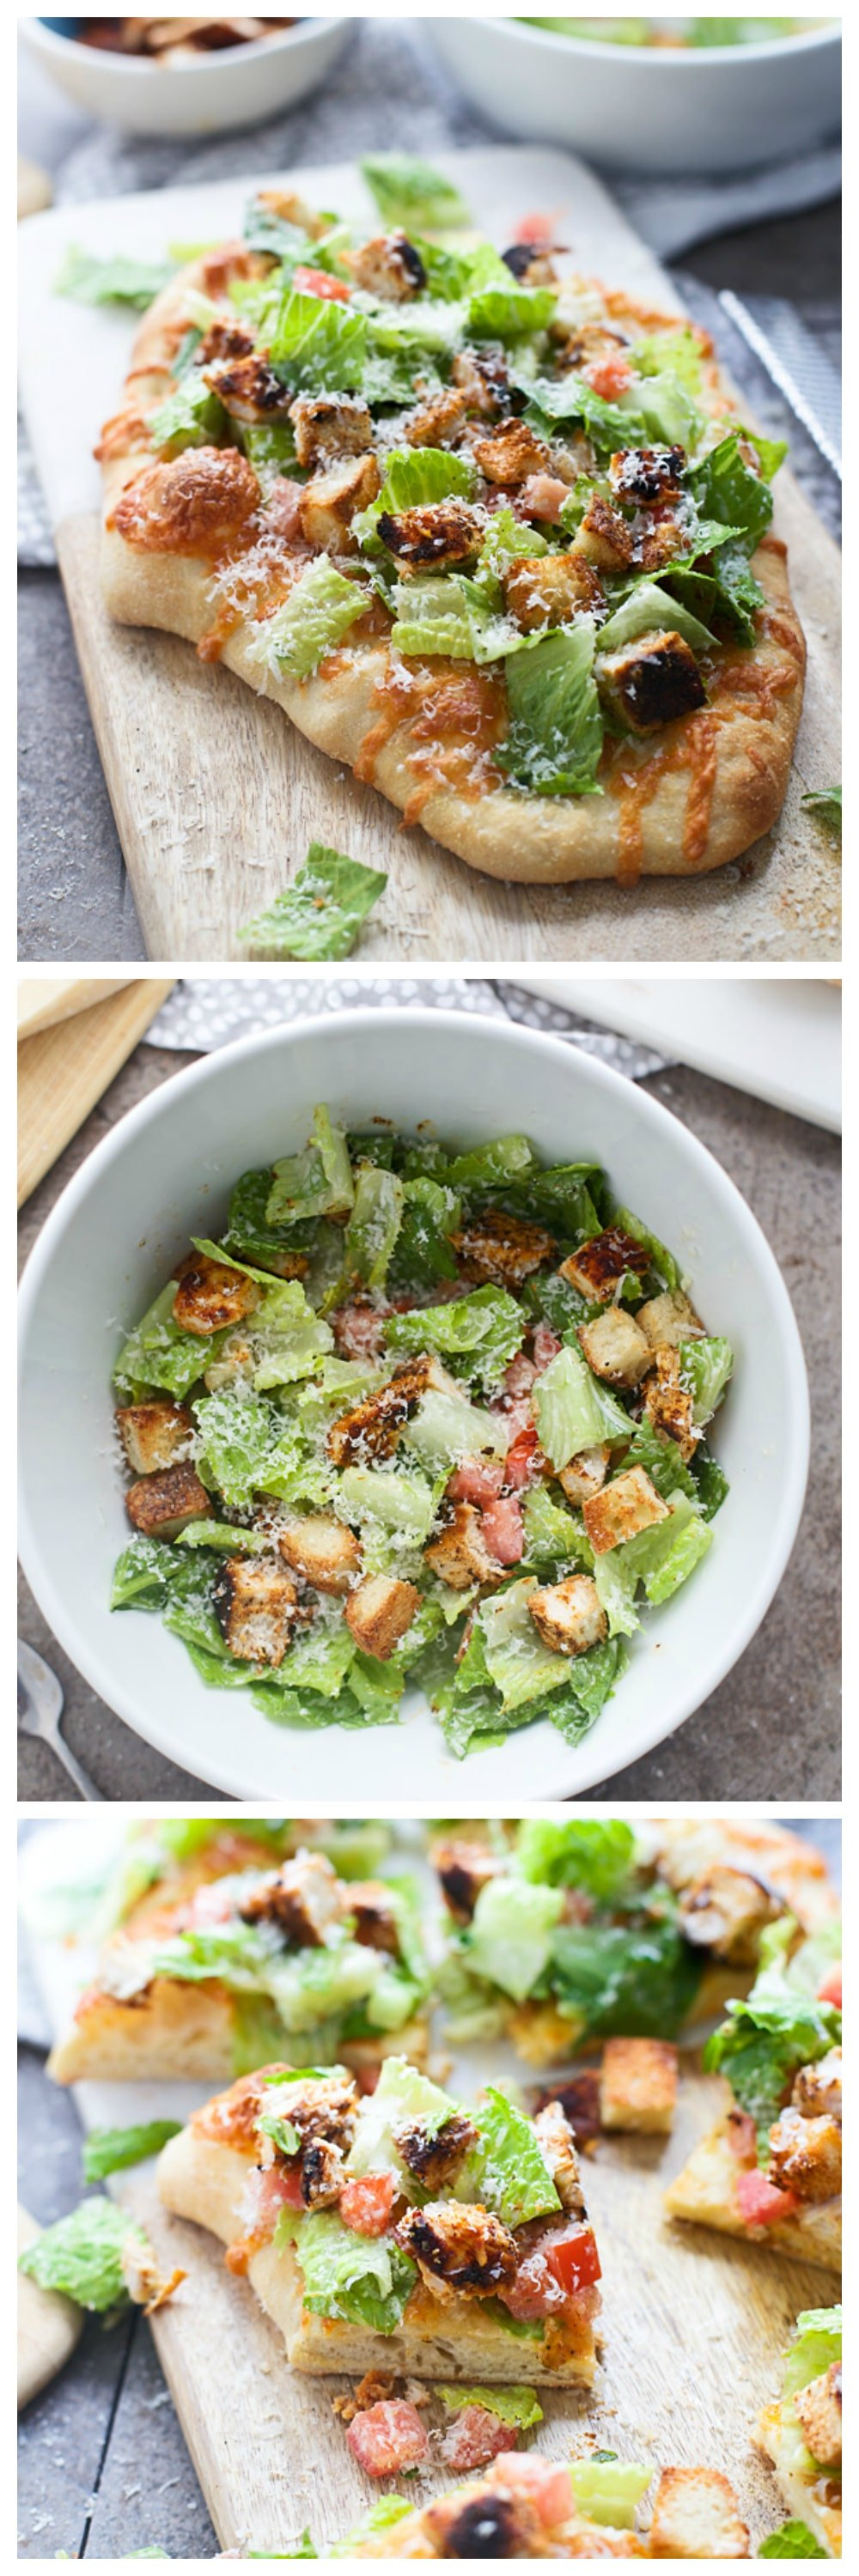 Blackened Chicken Caesar Salad Pizzas